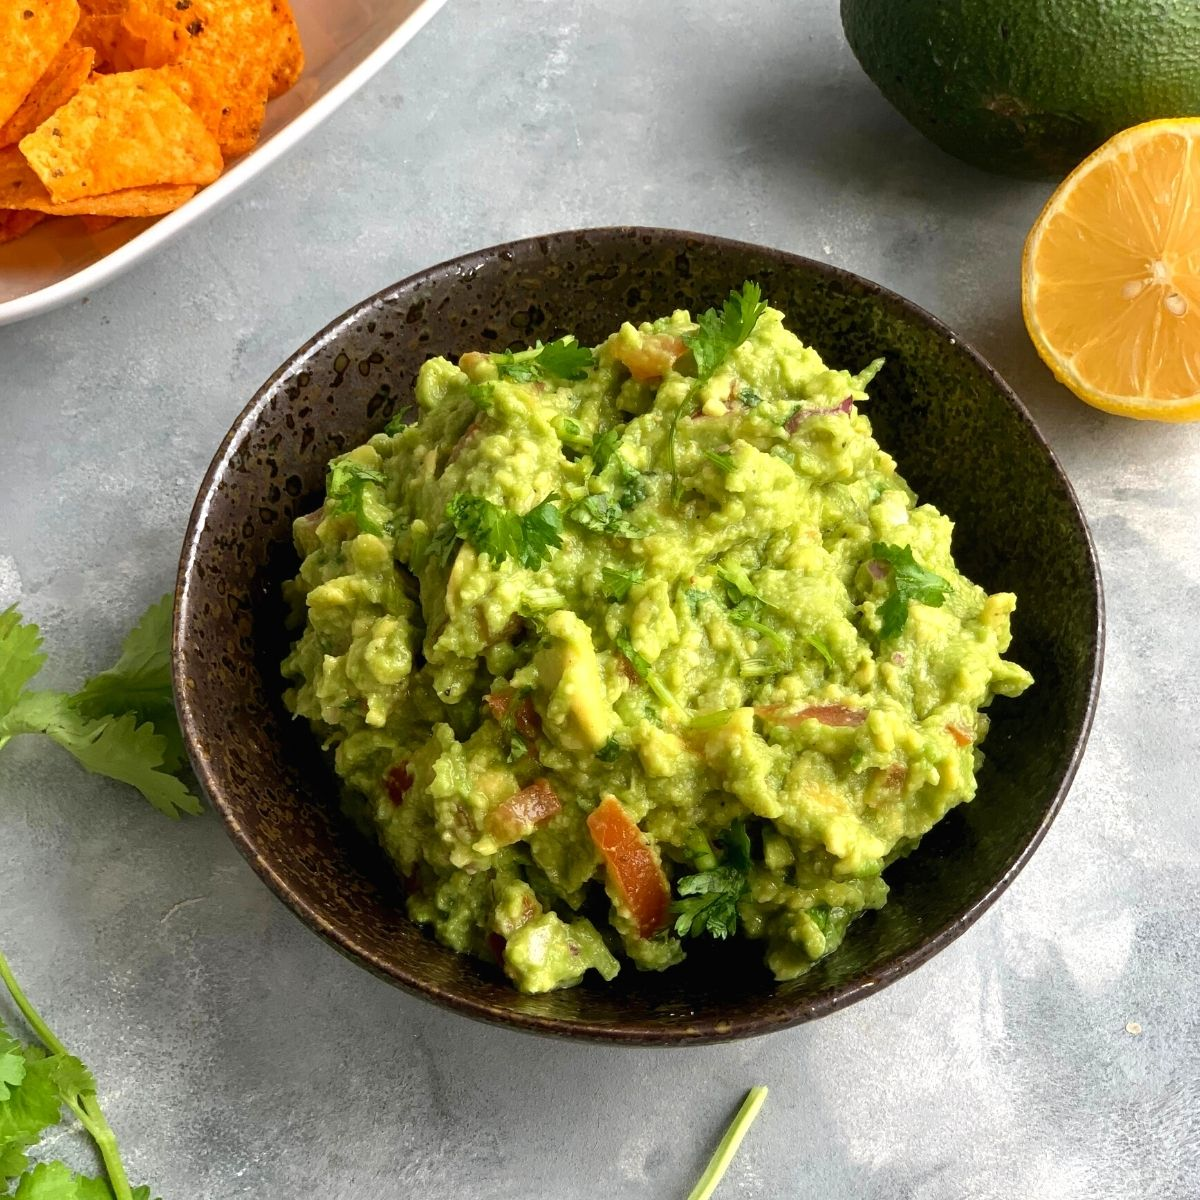 Easy Chunky Avocado Guacamole is a dip or a salad made using Avocado, Tomato, Onion and a few other ingredients. It goes well with some chips, nachos, pita bread or crackers.